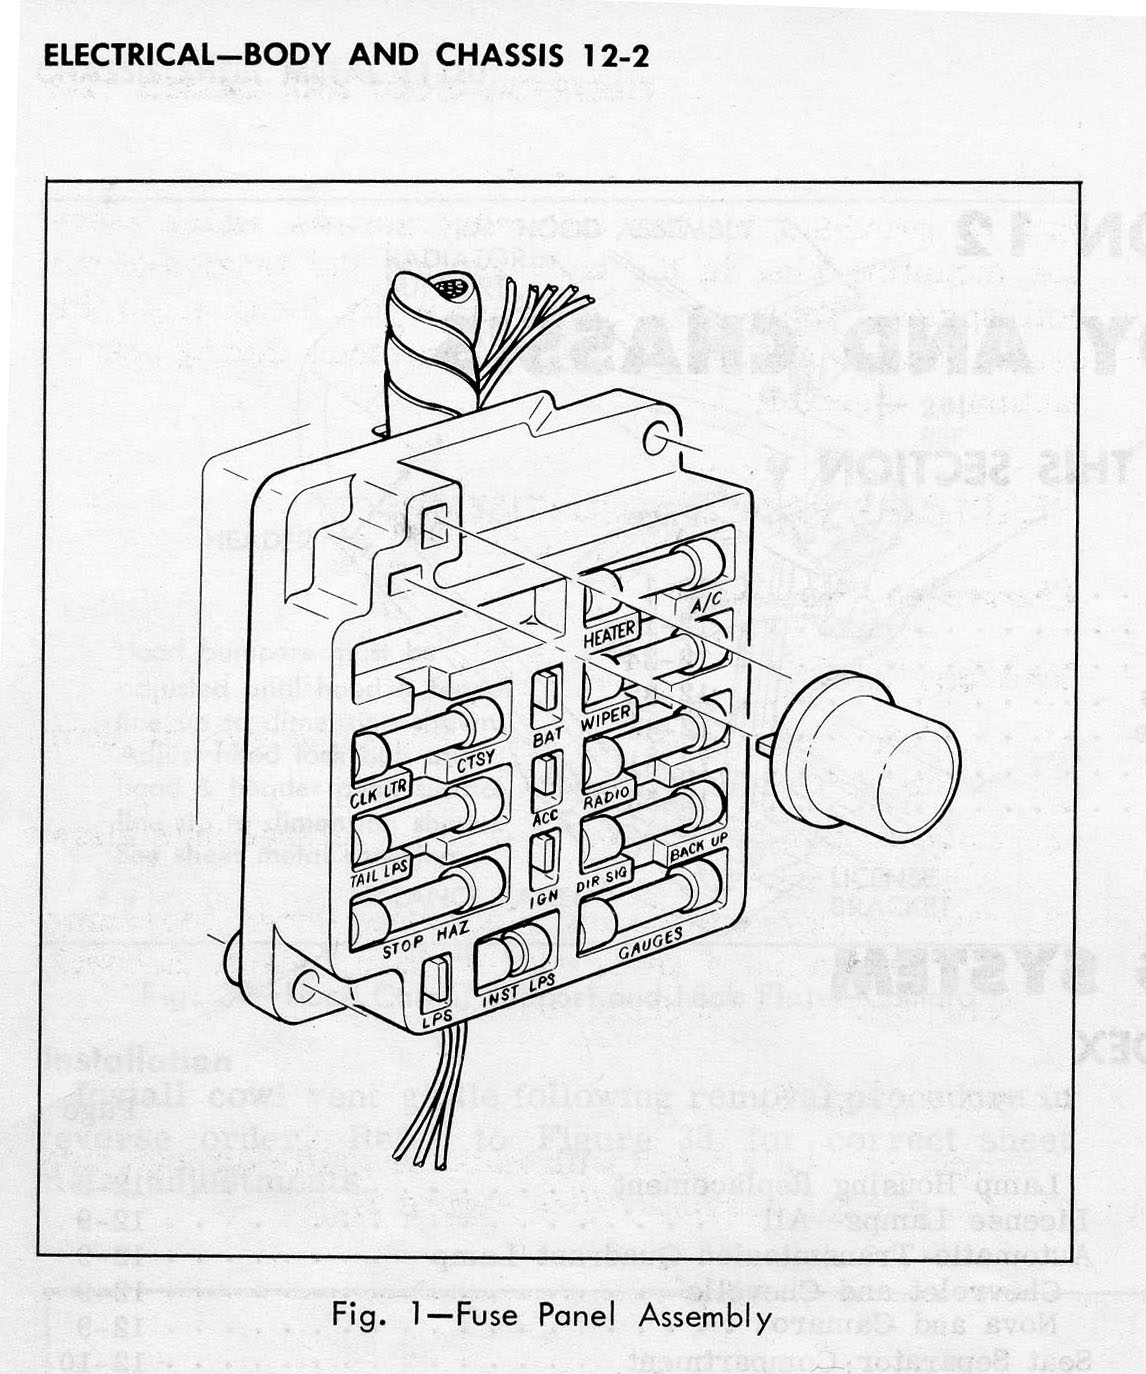 1969 Mustang Fuse Box Diagram Free Wiring For You 1983 1965 Panel Ford Mach 1